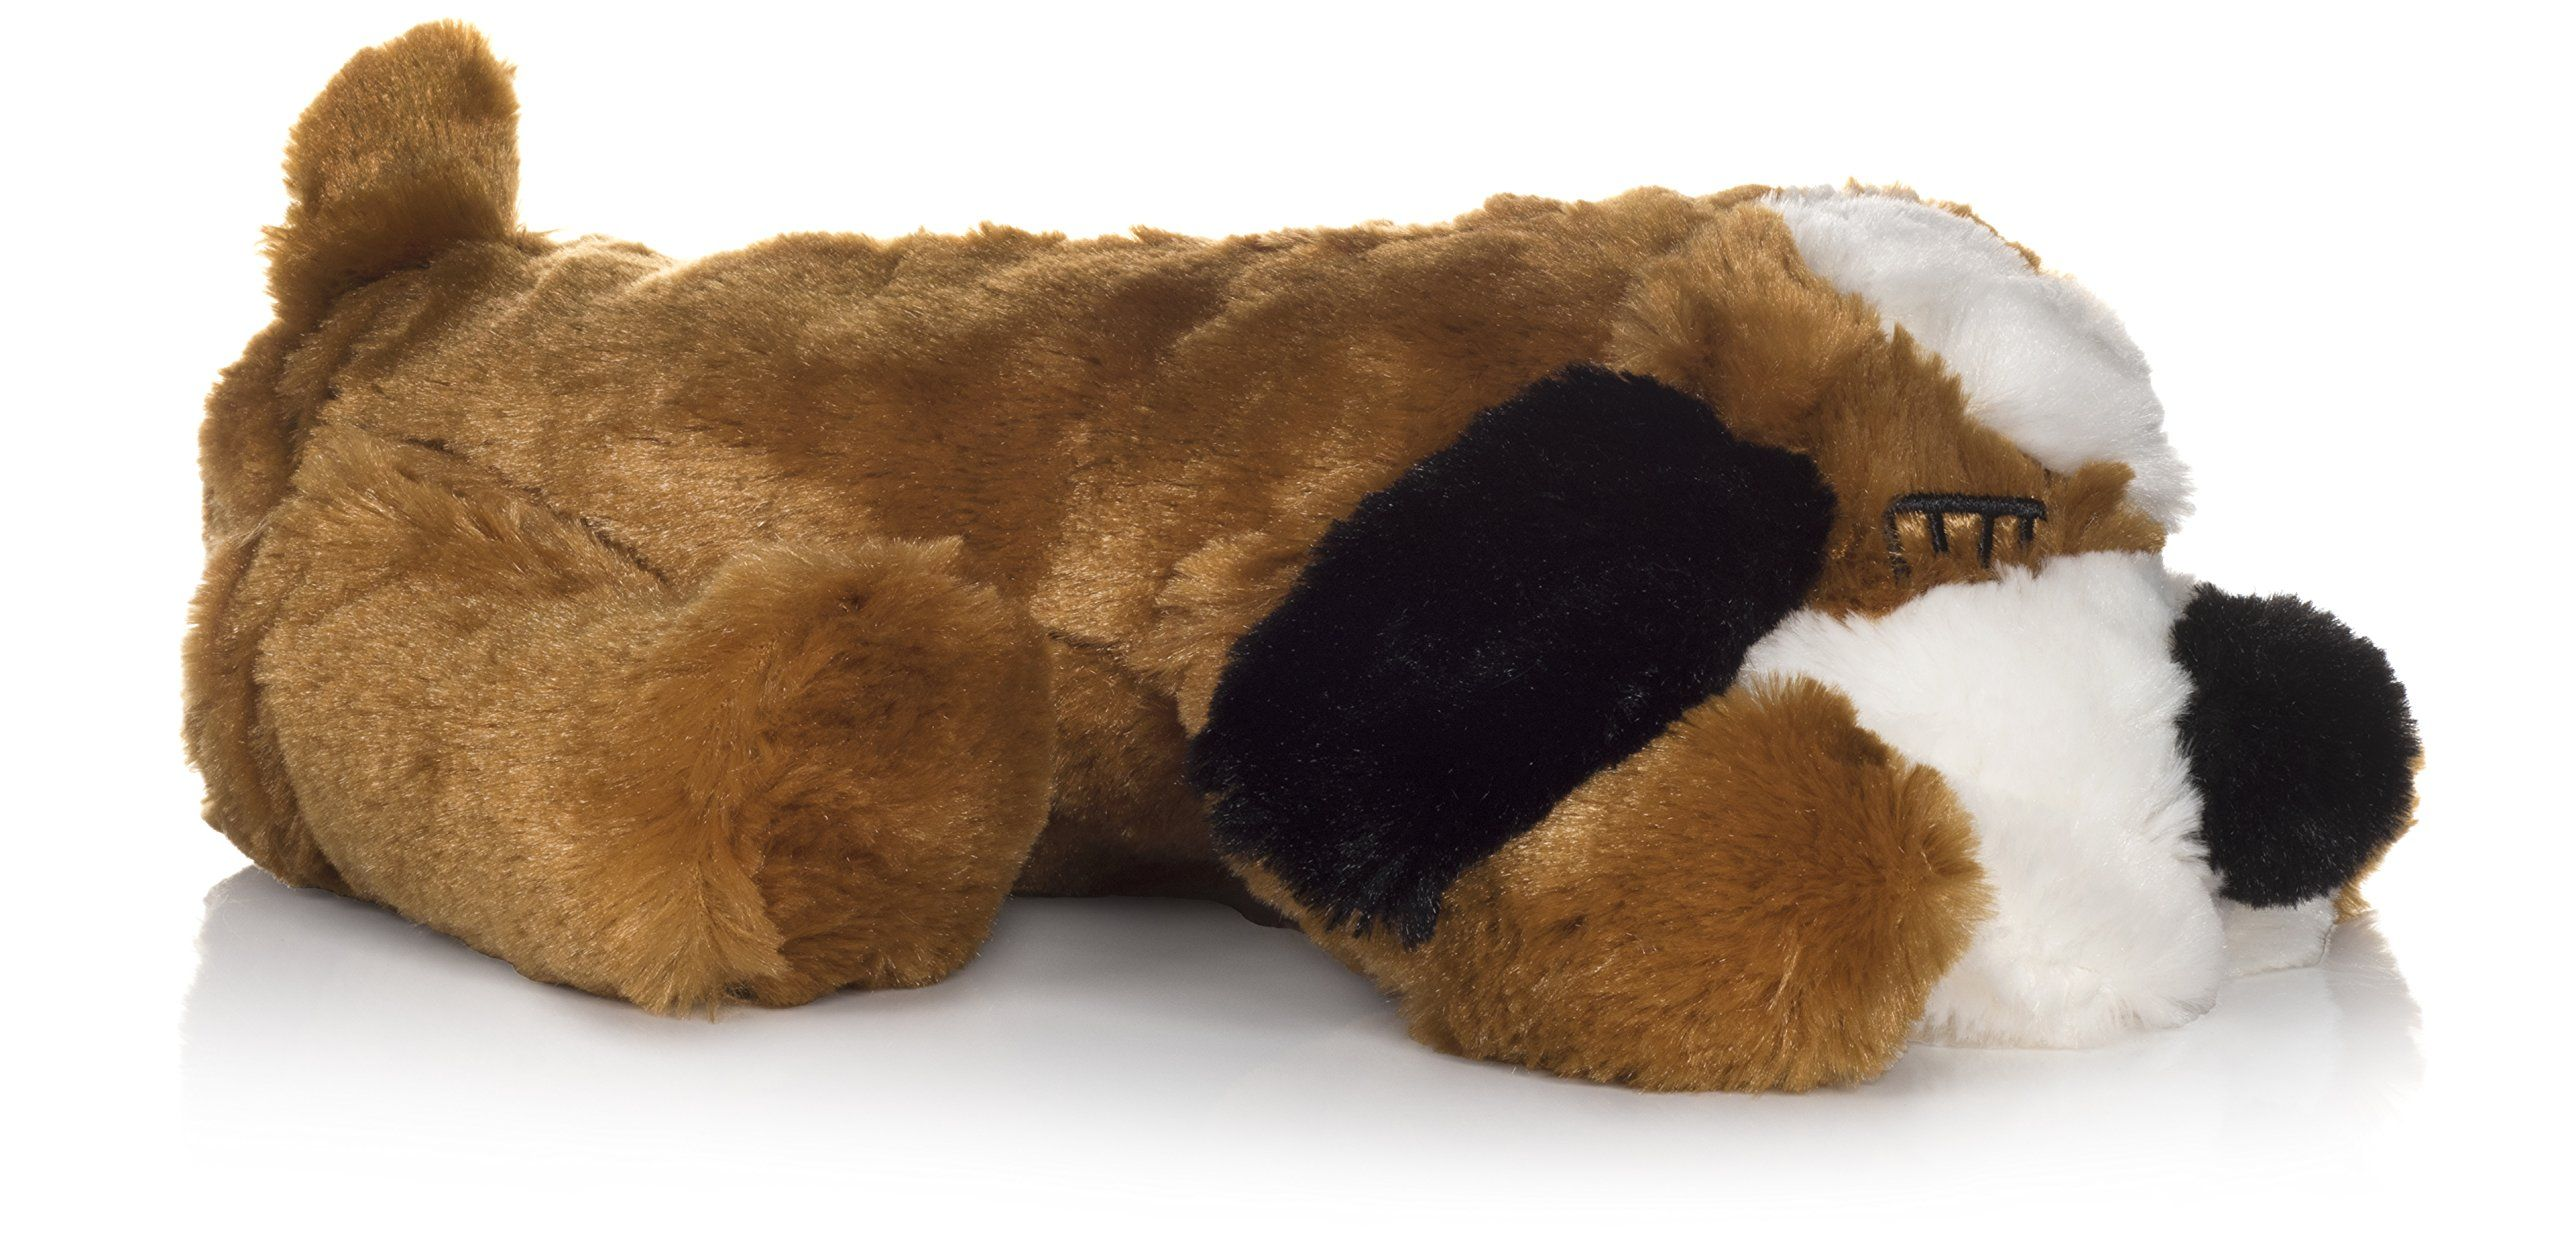 Smart Pet Love Snuggle Puppy Behavioral Aid Toy Brown And White